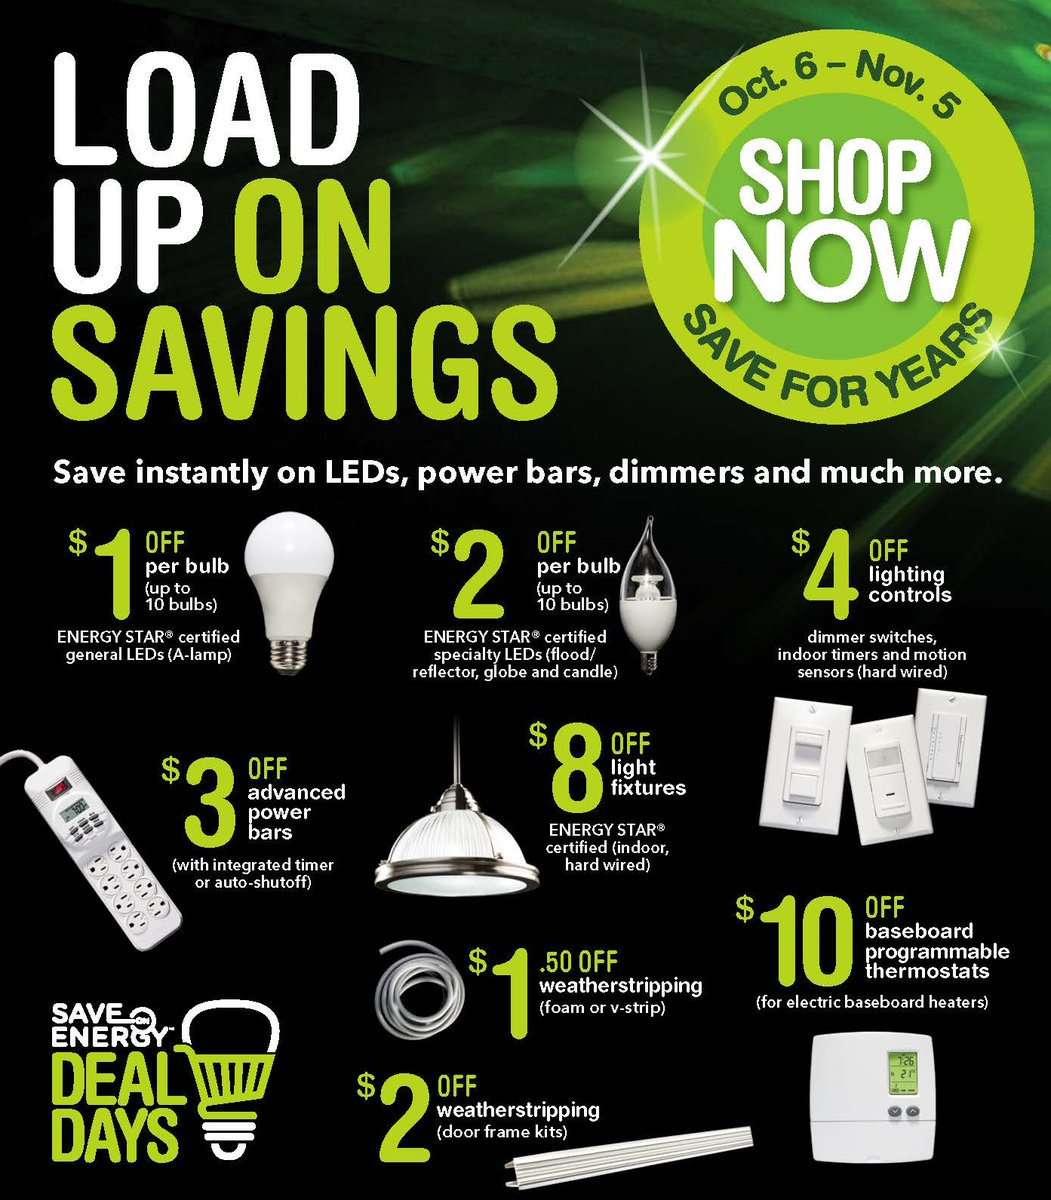 Save On Energy Deal Days October 6 to November 5